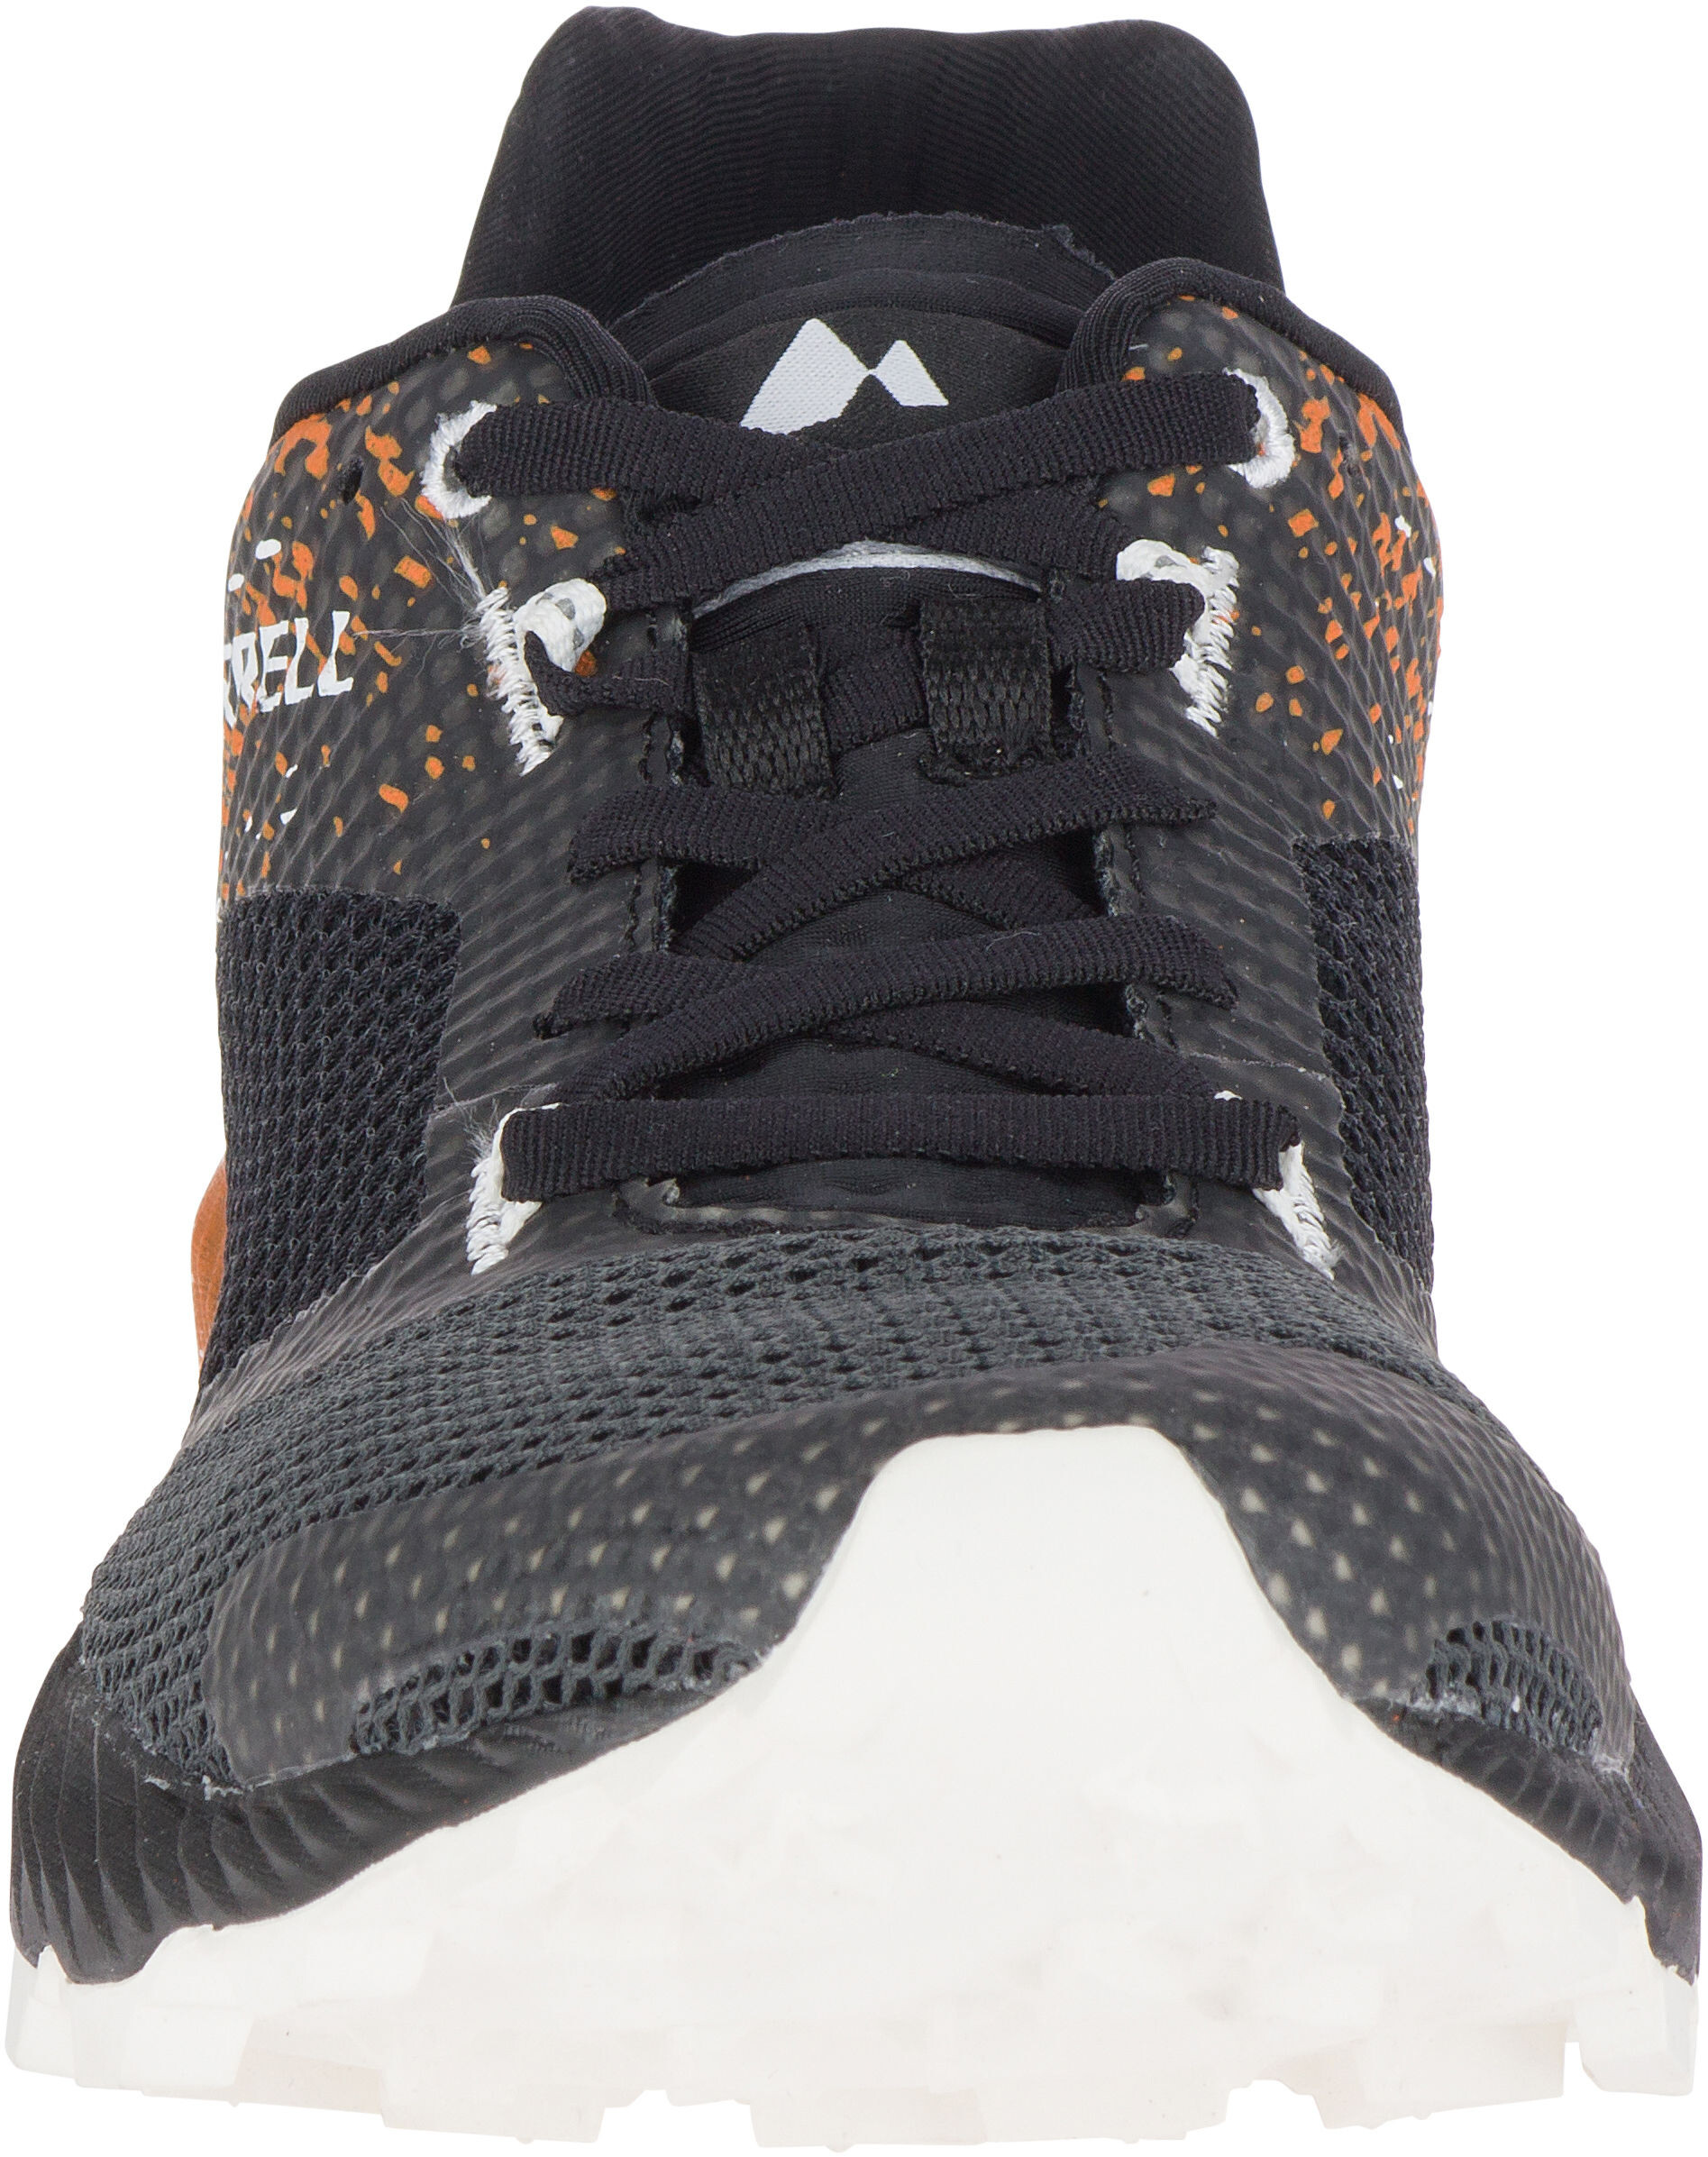 dd377d69265 Merrell M s All Out Crush Tough Mudder 2 Shoes Tm Orange - addnature.com